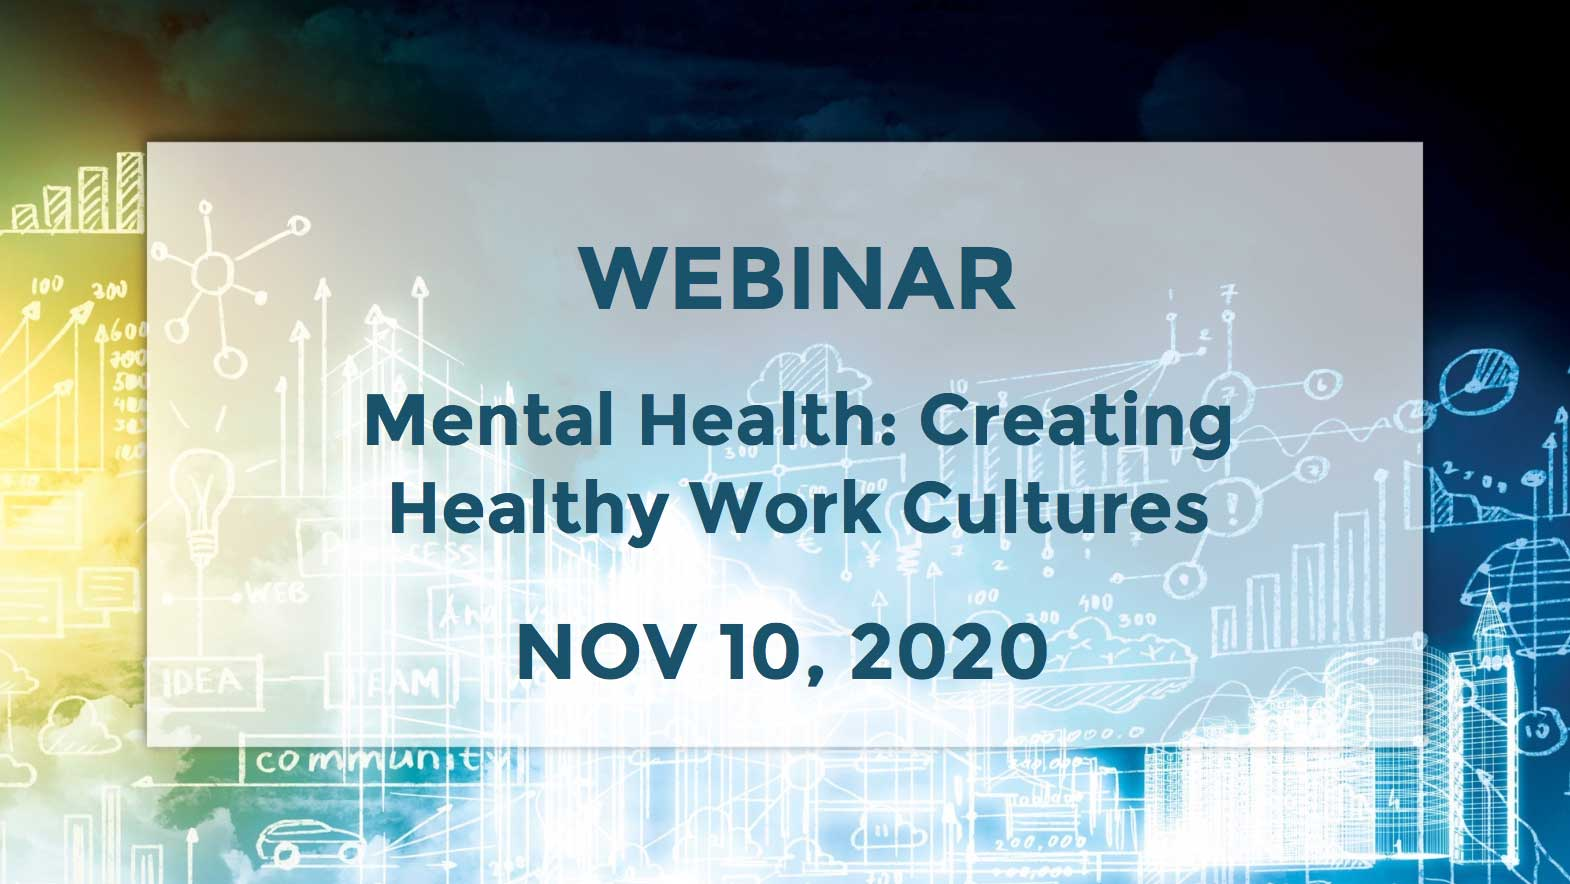 November 10 – MENTAL HEALTH: Creating Healthy Work Cultures